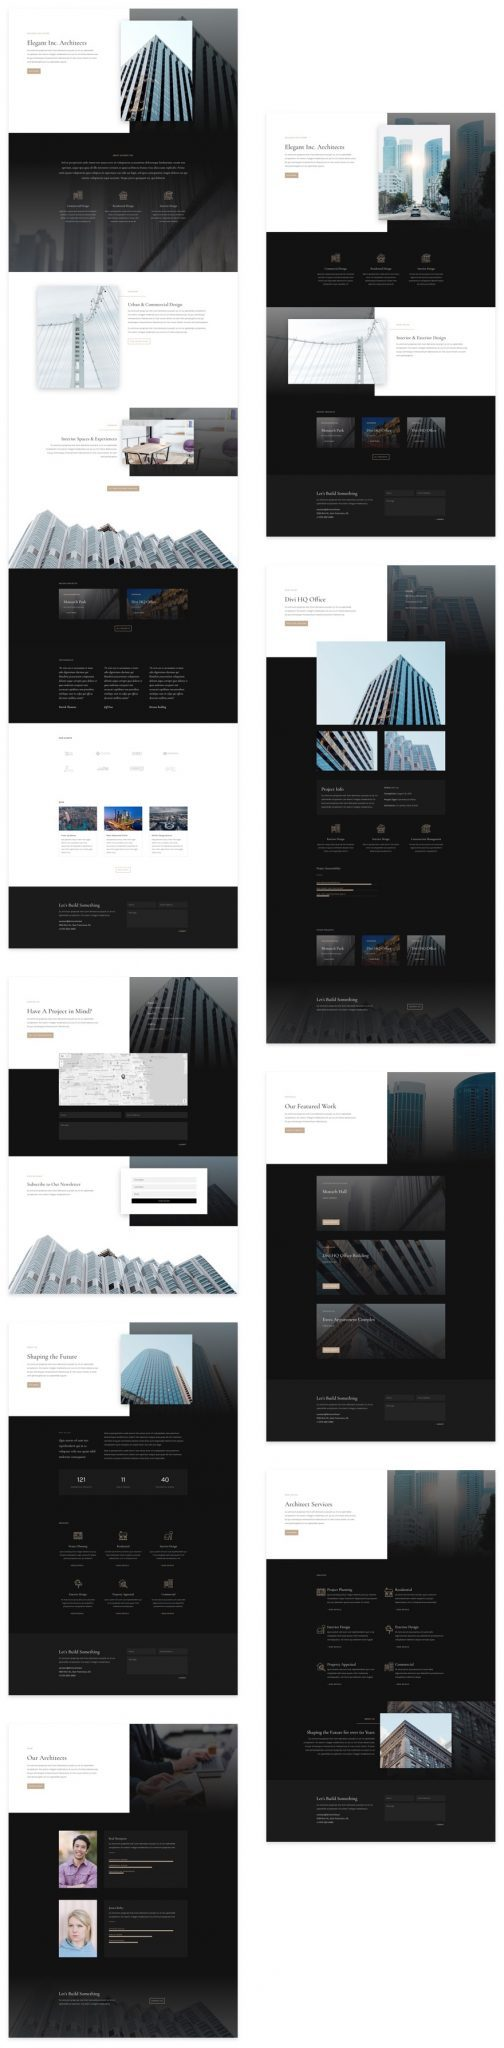 Architecture Firm Layout Pack